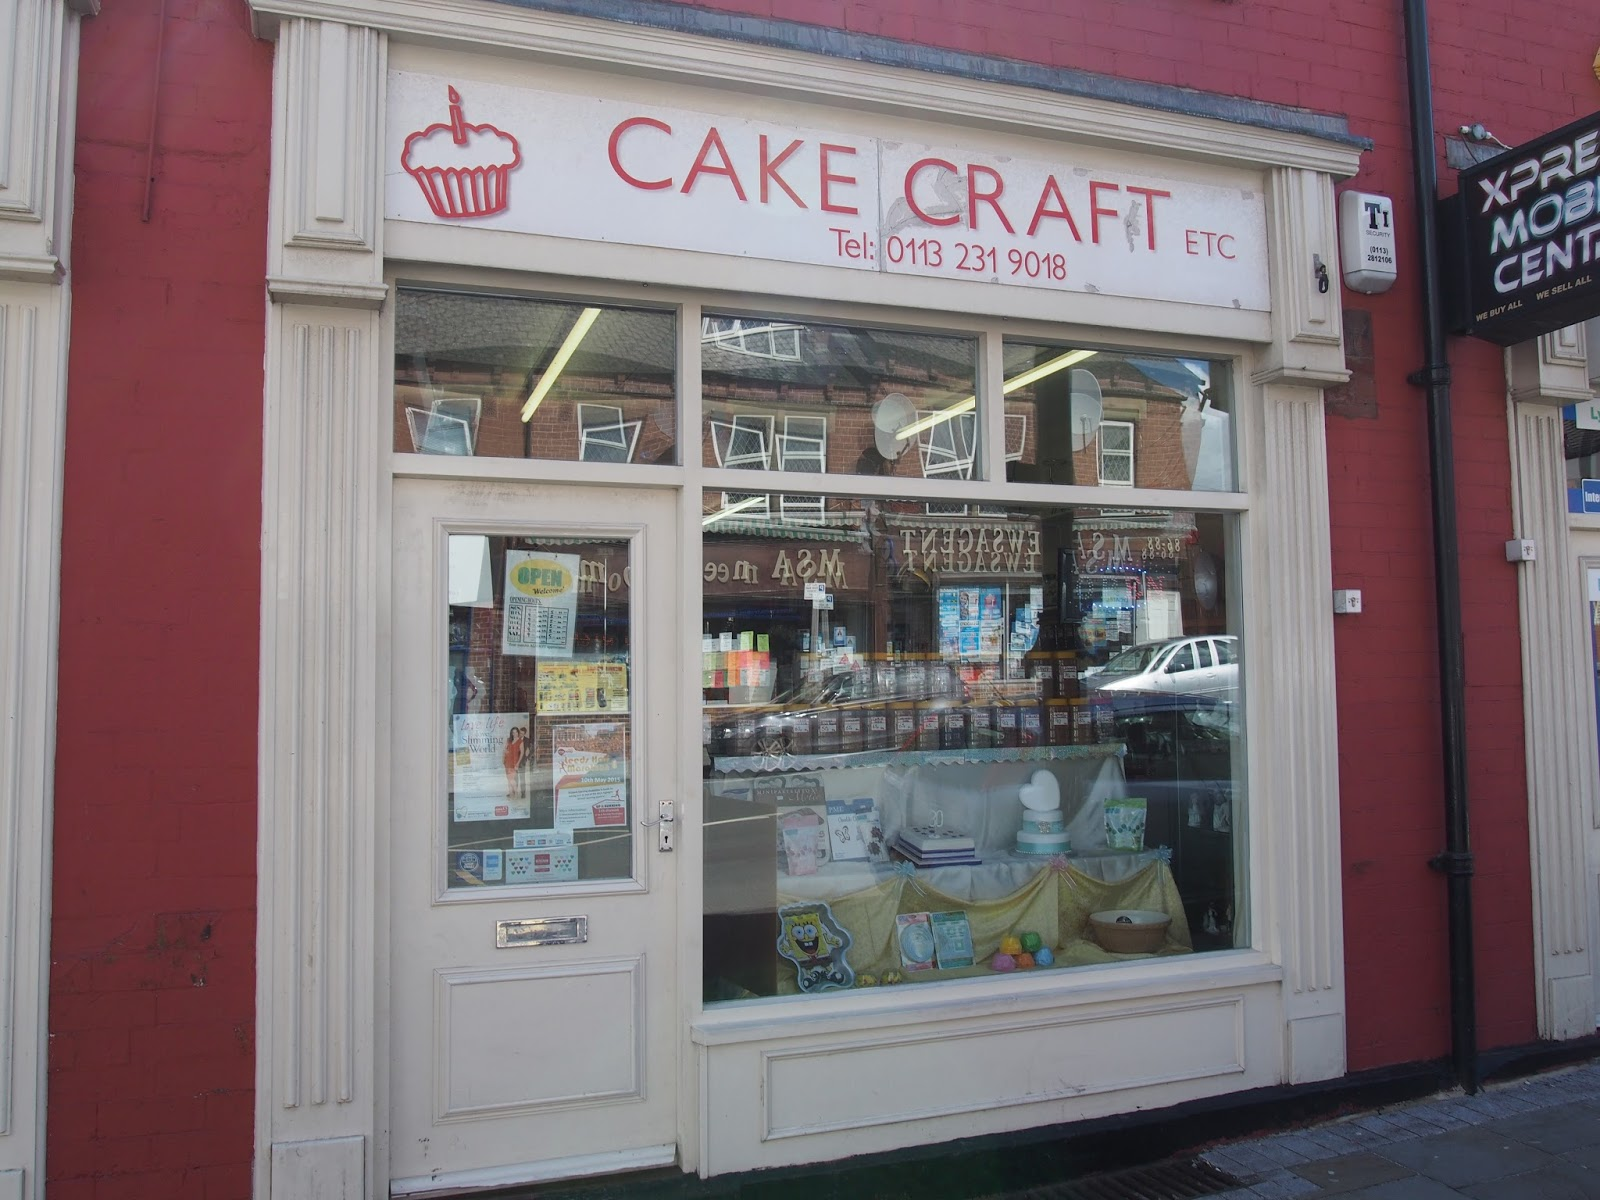 Cake Craft Armley